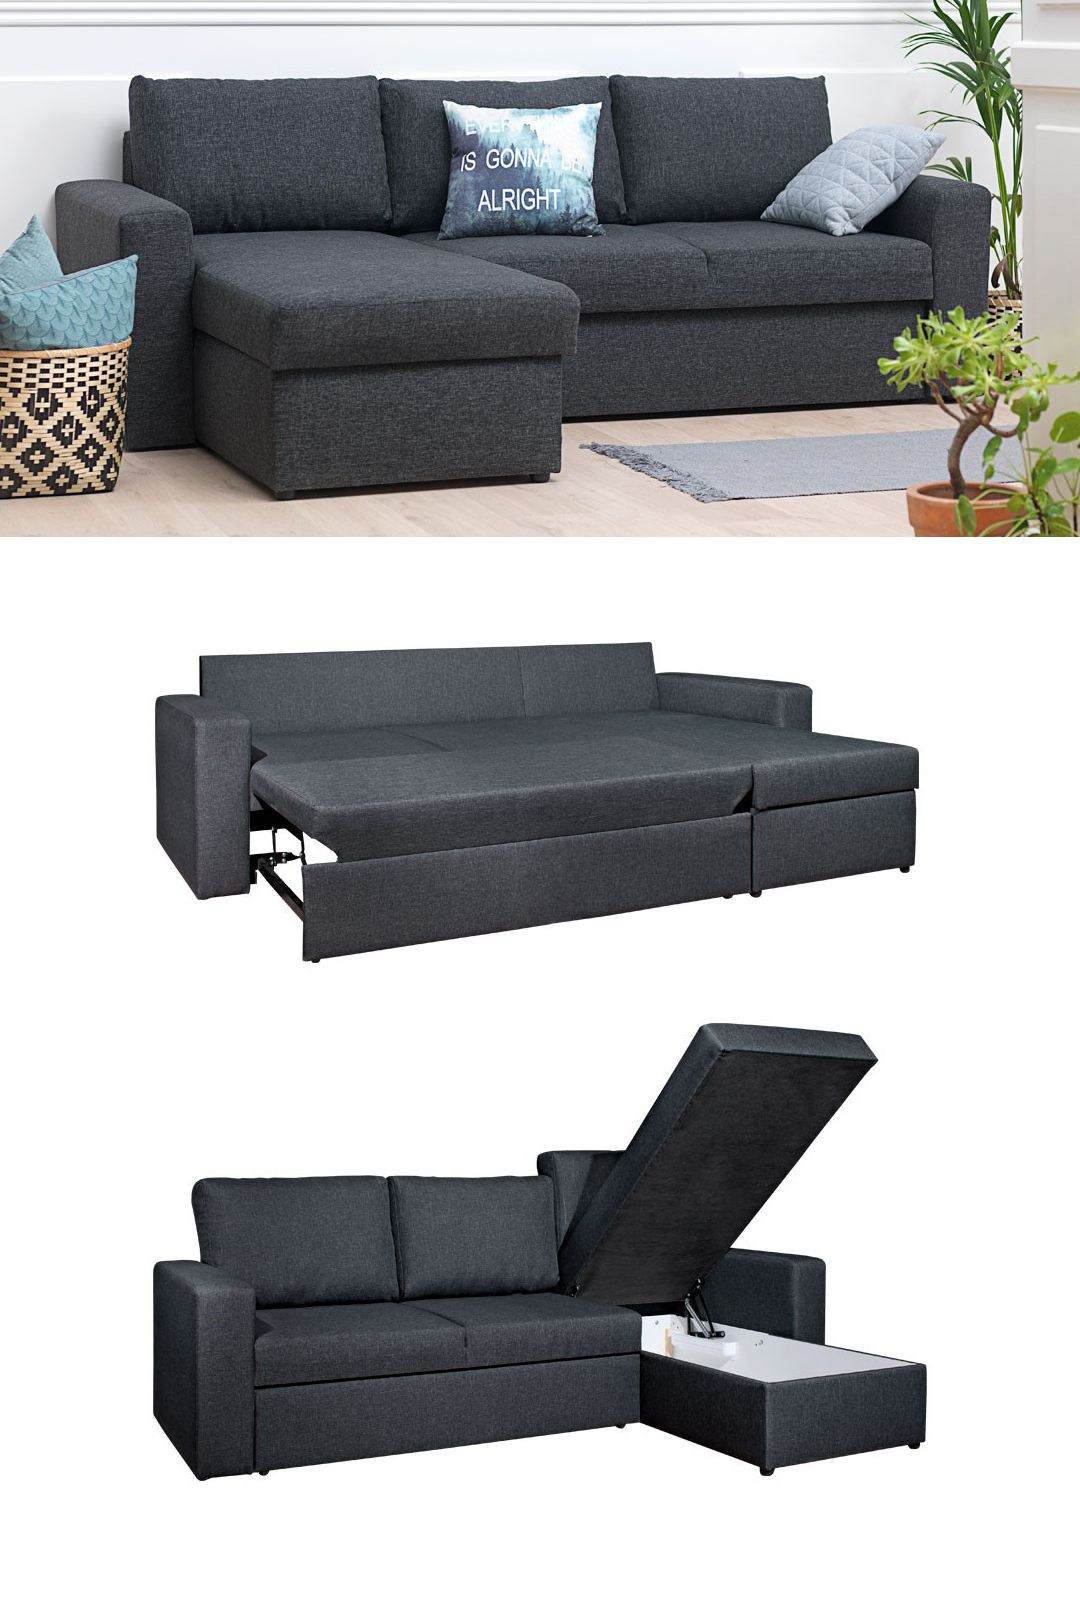 Bettsofa Florida Mariager Sofa Bed Dark Grey In 2019 Living Room Sofa Bed